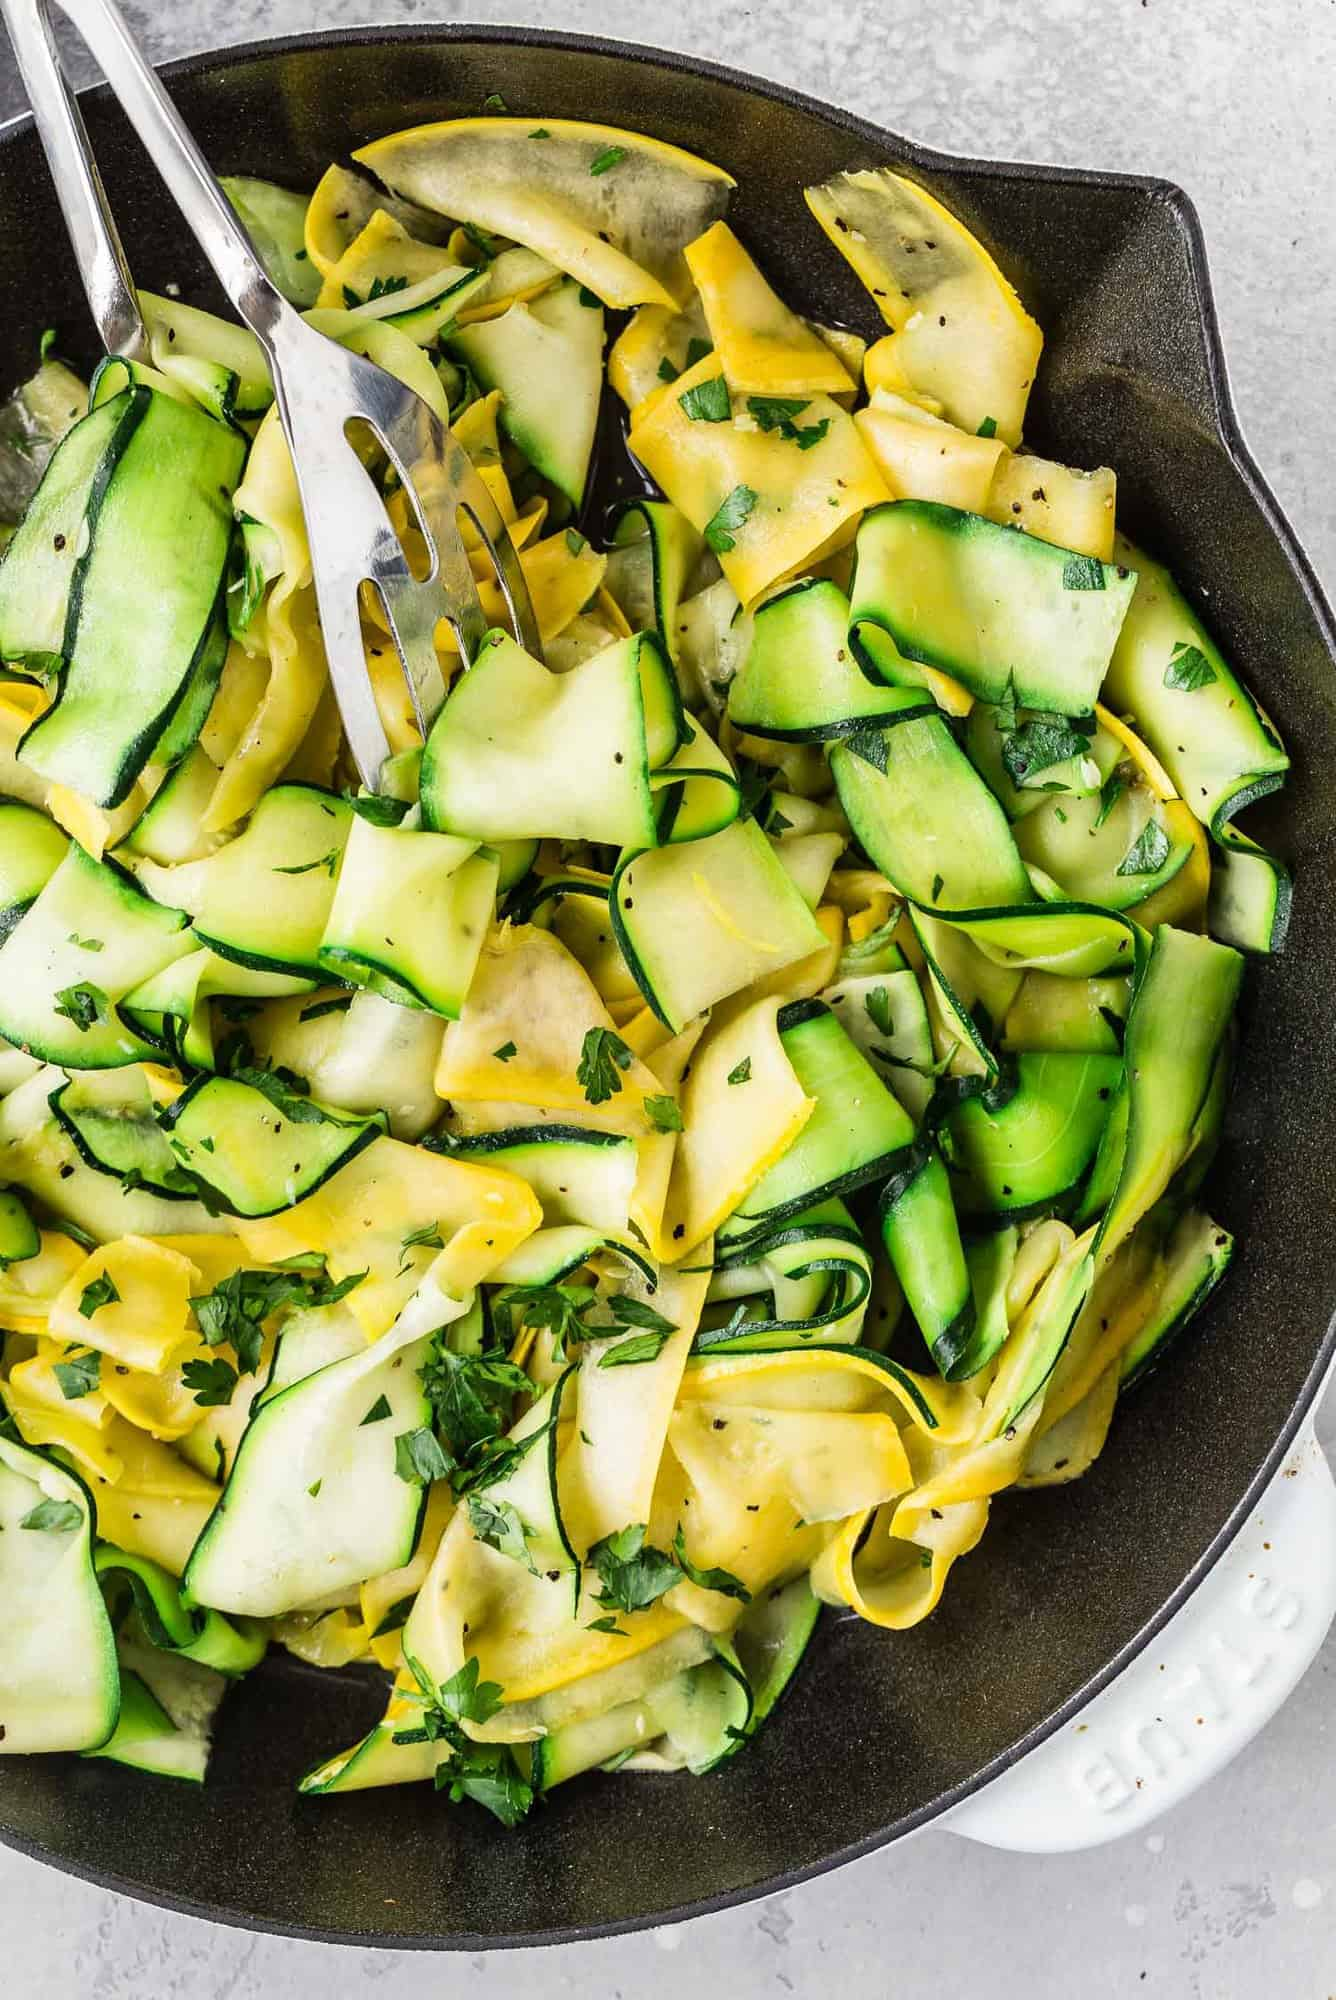 Zucchini and summer squash ribbons in a white and black skillet.